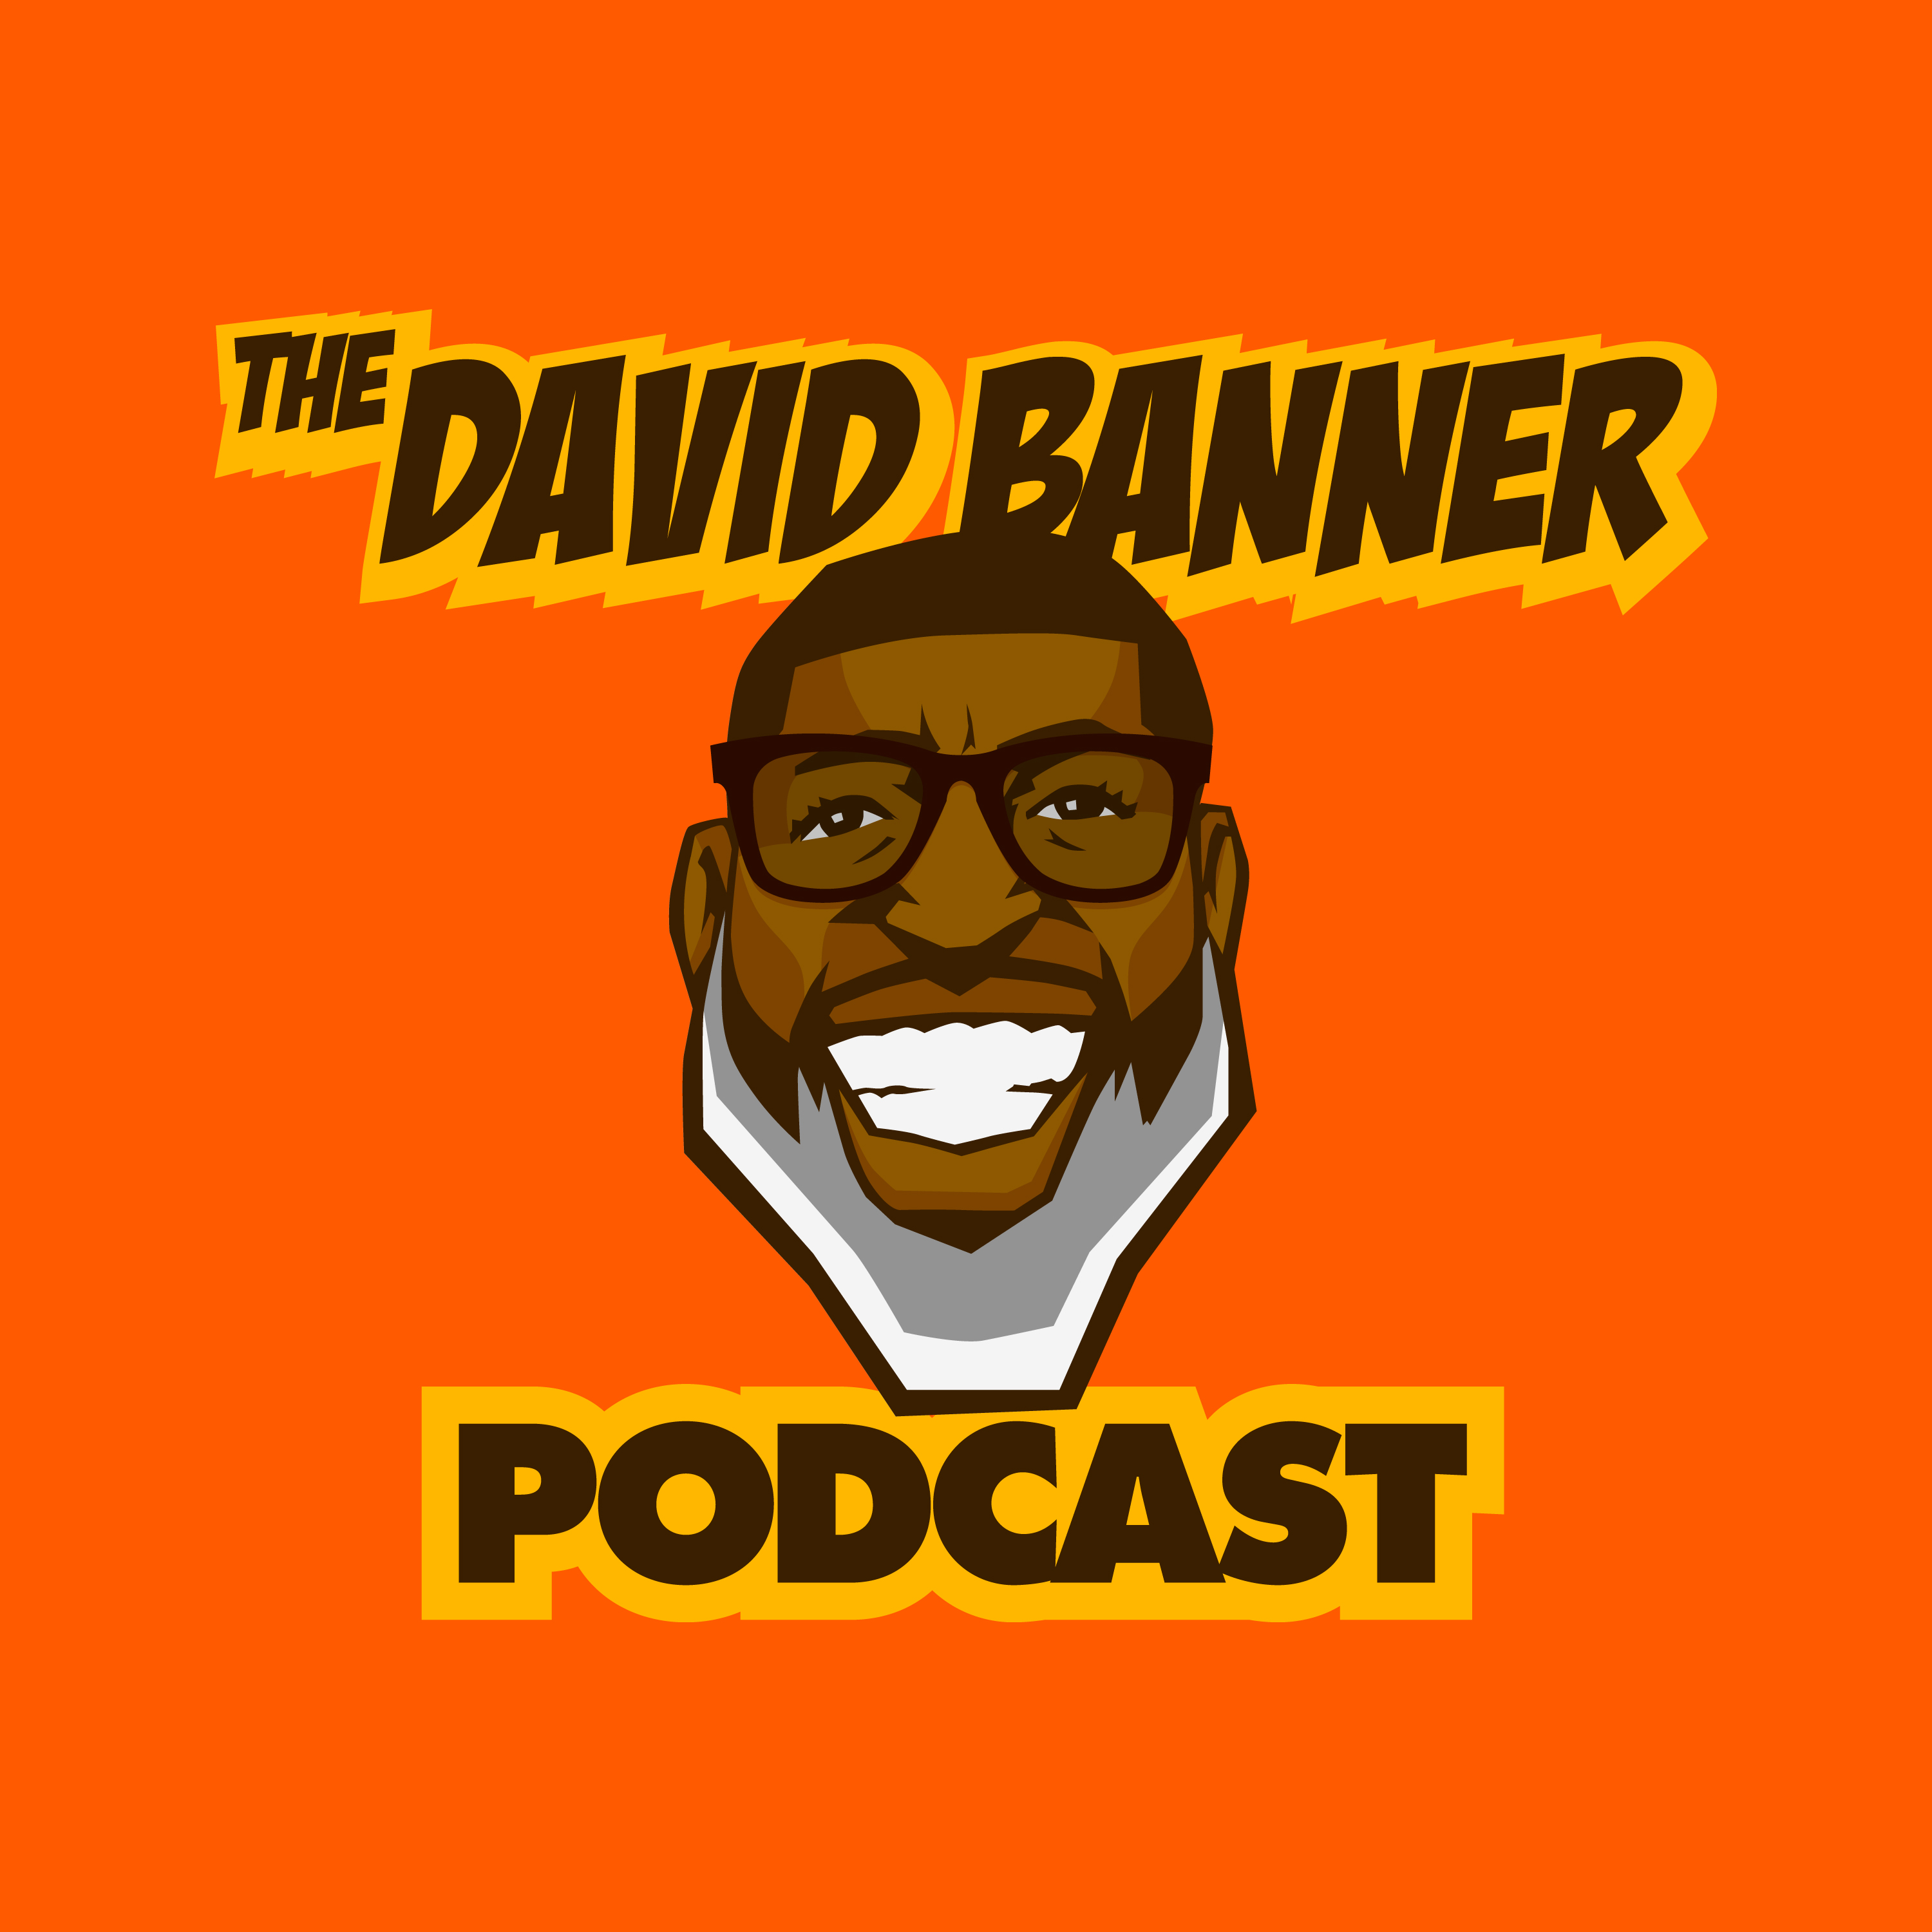 The David Banner Podcast show art